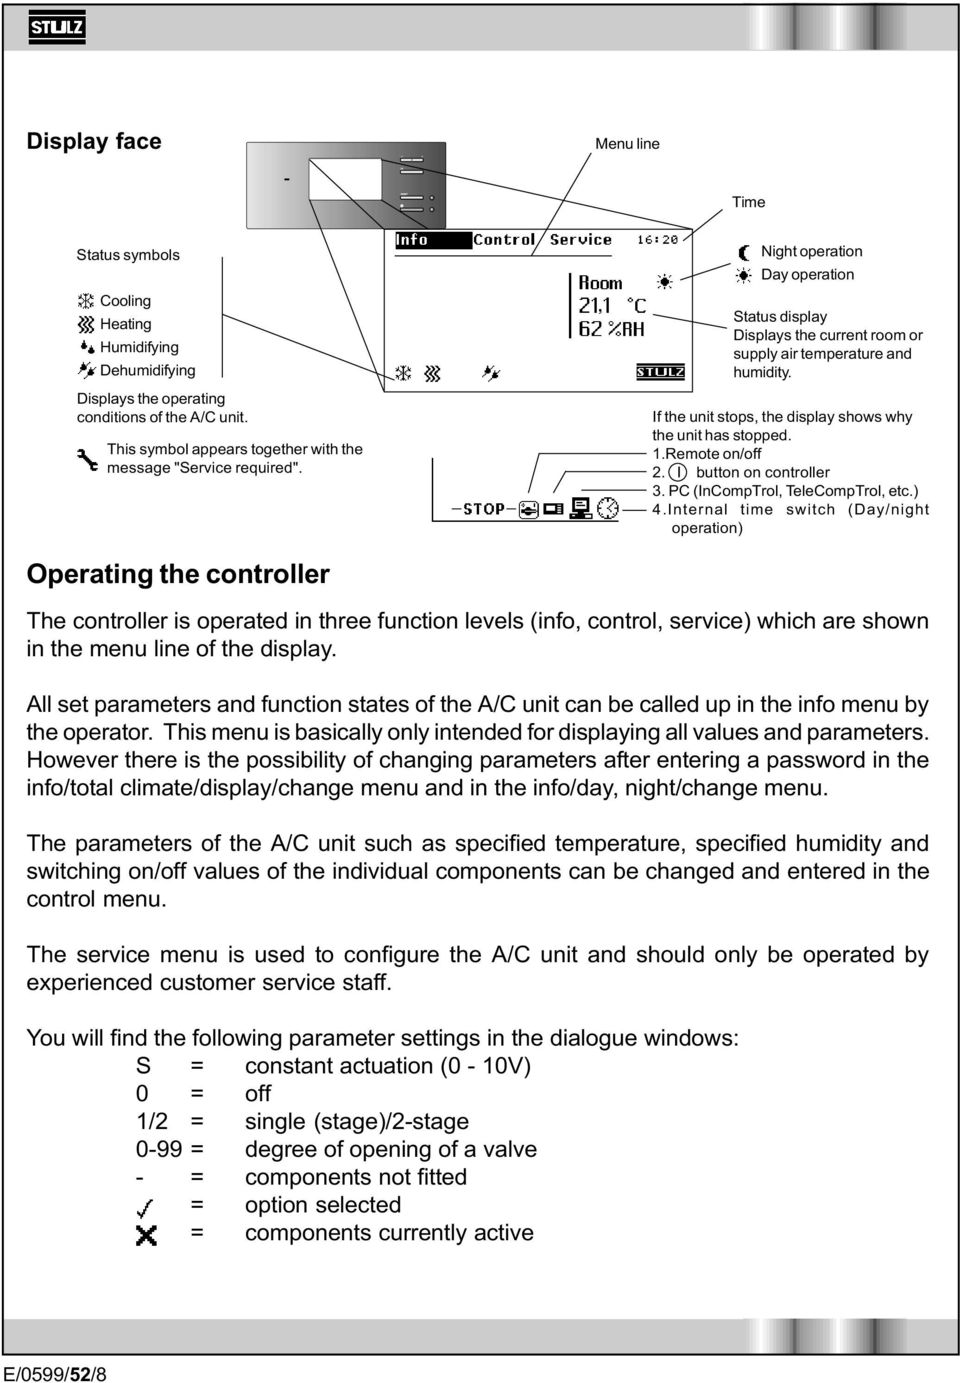 Comptrol 5000 Index 52 Issue 599 Air Conditioning Microprocessor Stulz Wiring Diagram If The Unit Stops Display Shows Why Has Stopped 1